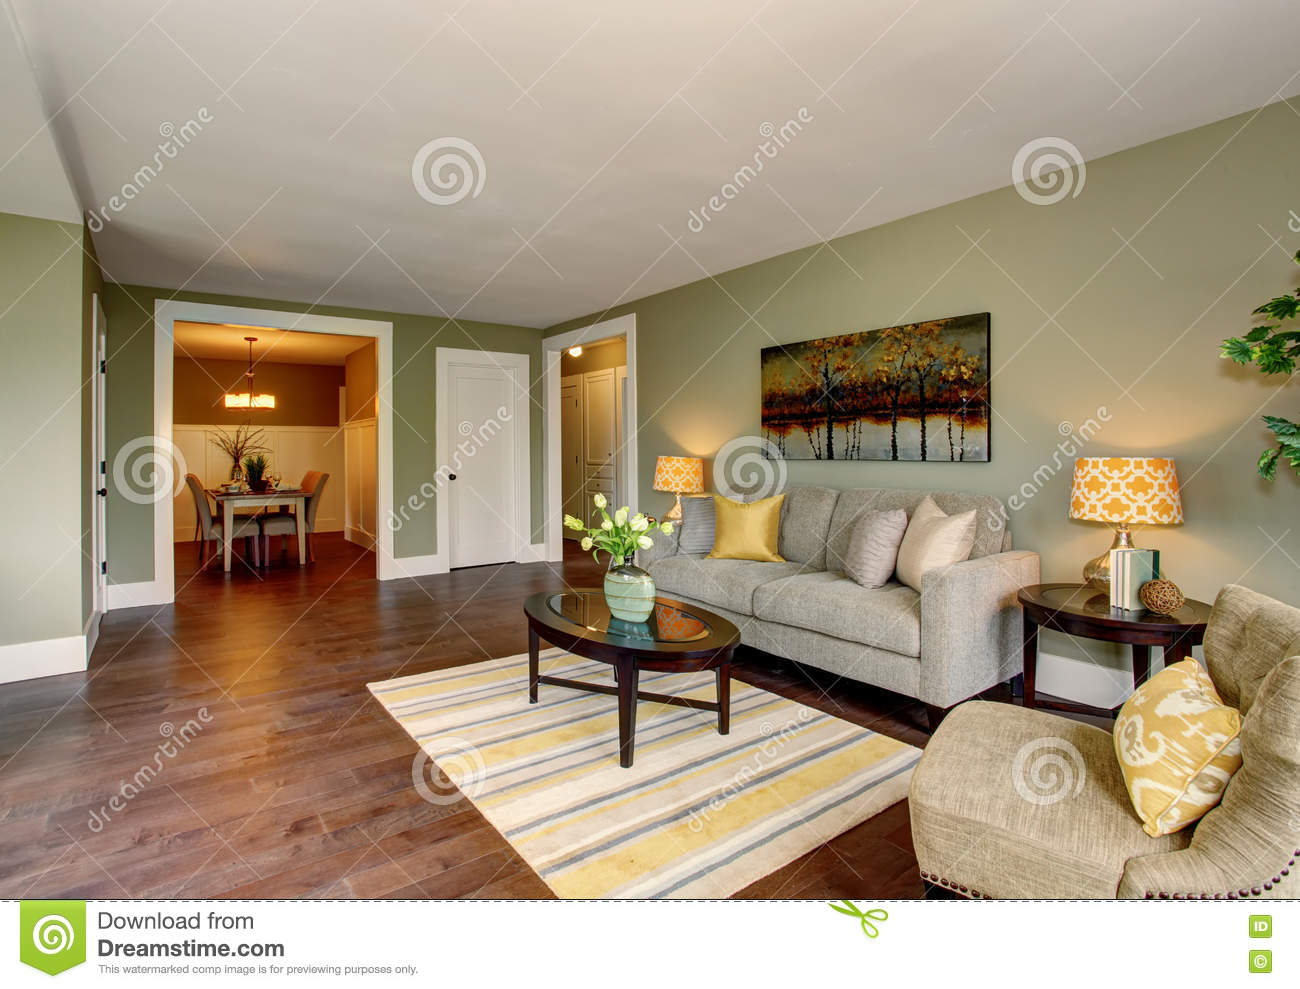 Living Room Interior With Green Walls Hardwood Floor And Rug ...